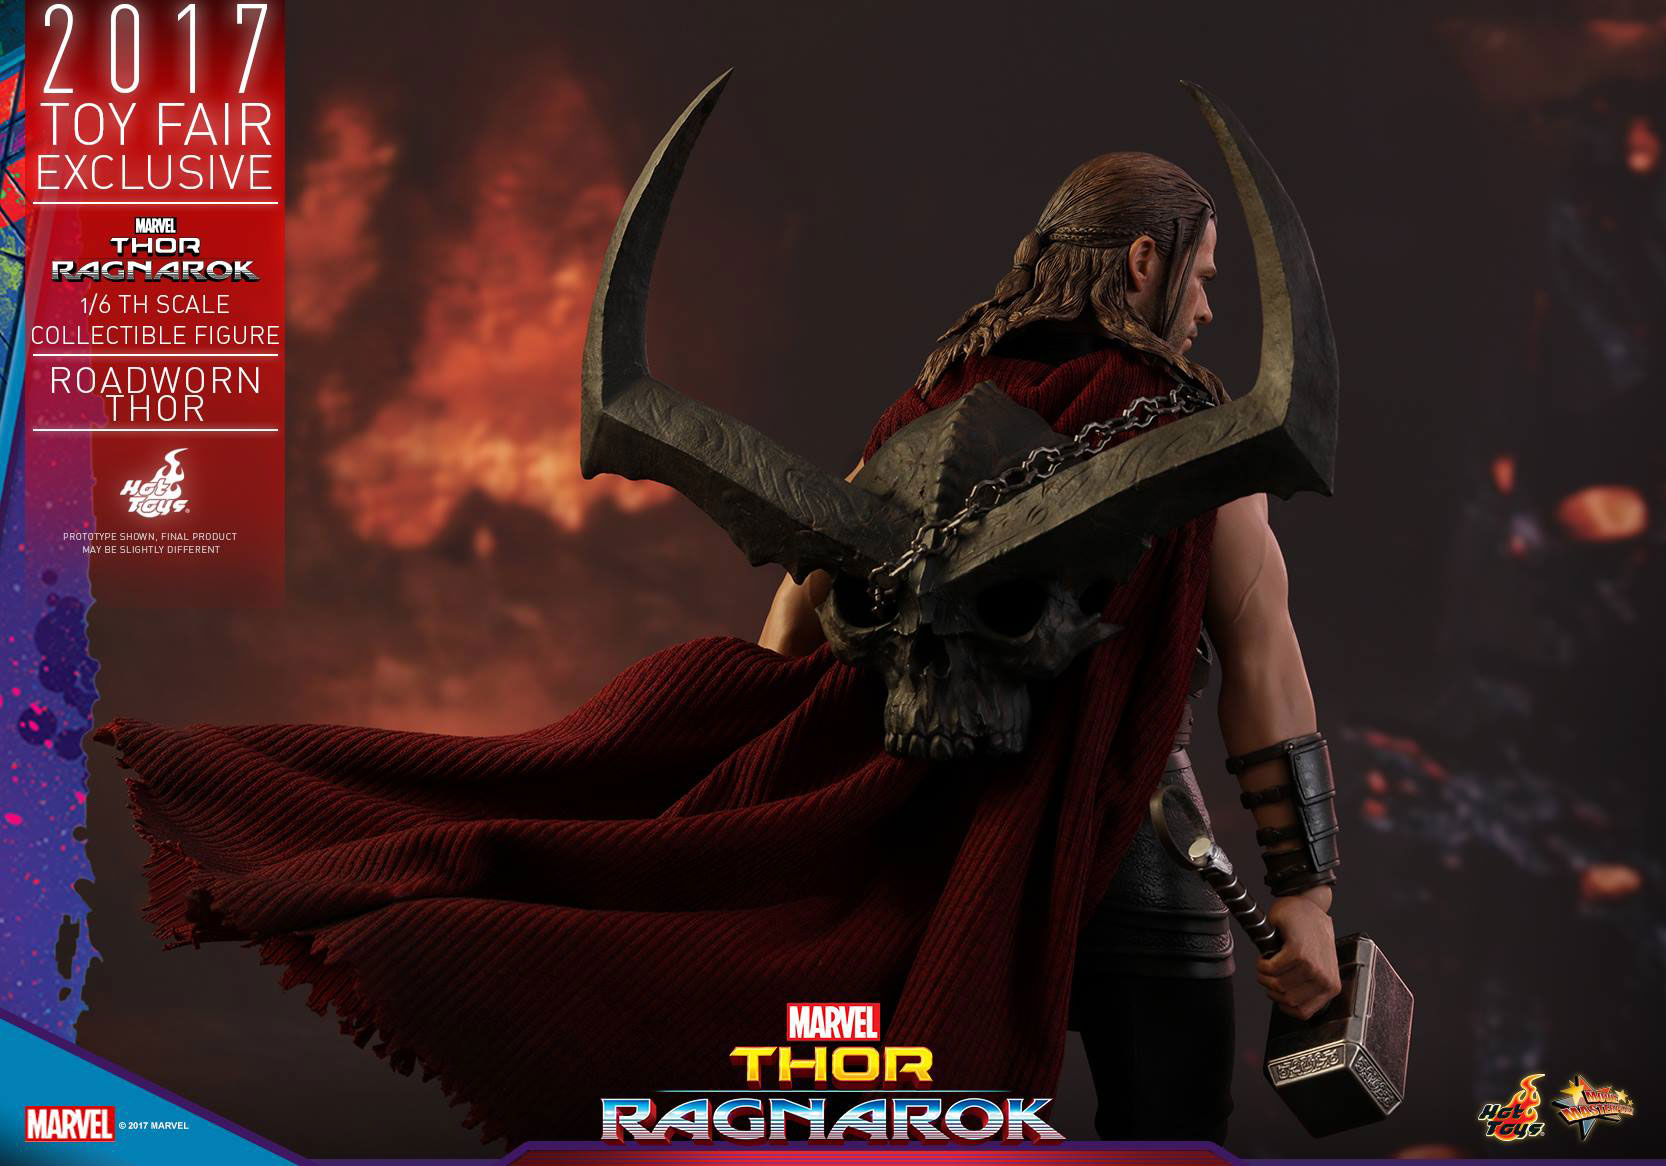 thor-ragnarok-roadworn-thor-hot-toys-figure-3